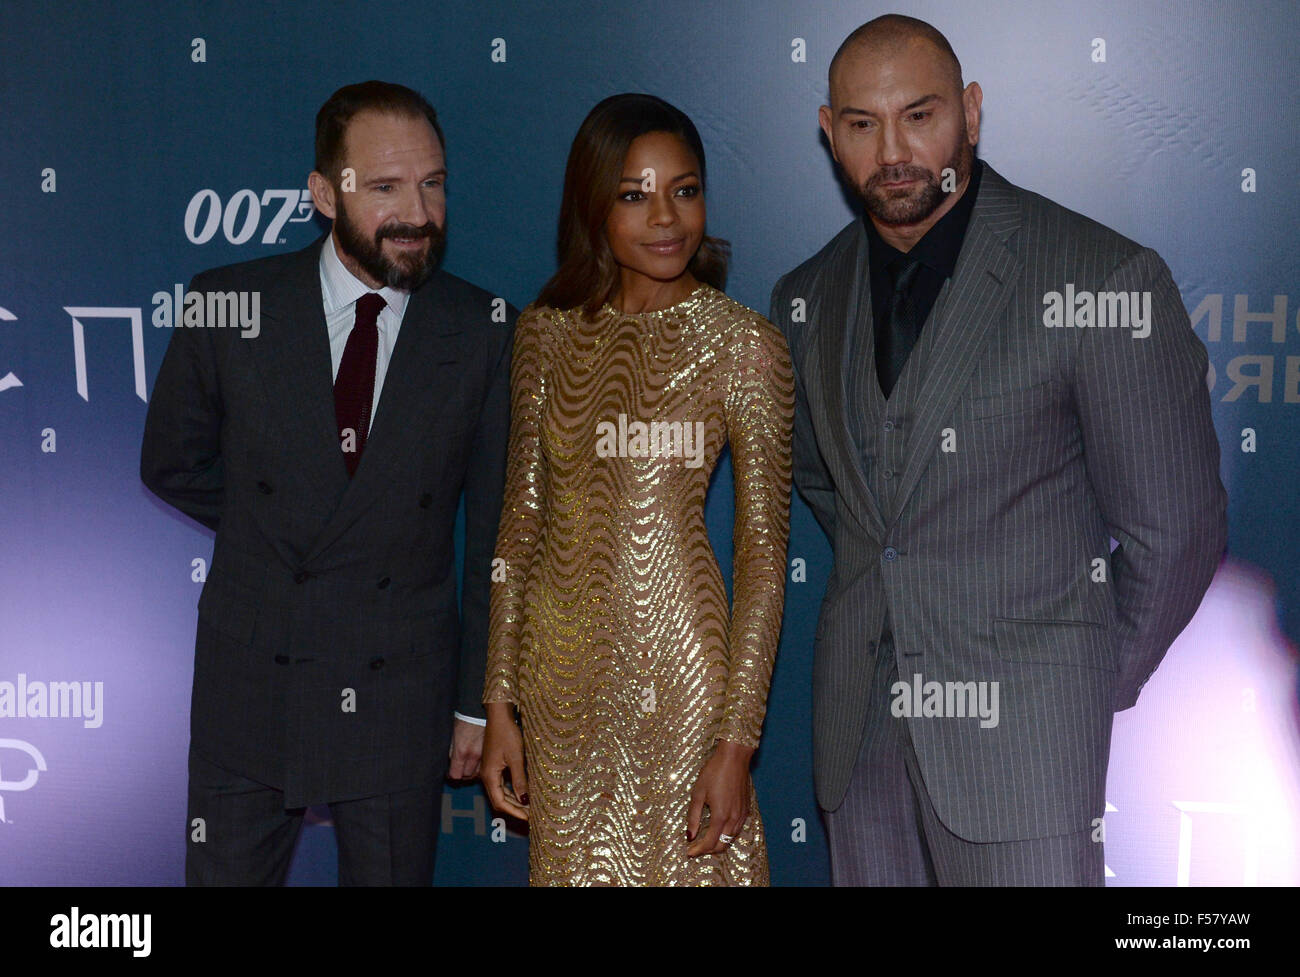 Moscow, Russia. 29th Oct, 2015. British actor Ralph Fiennes, British actress Naomie Harris and American actor Dave - Stock Image